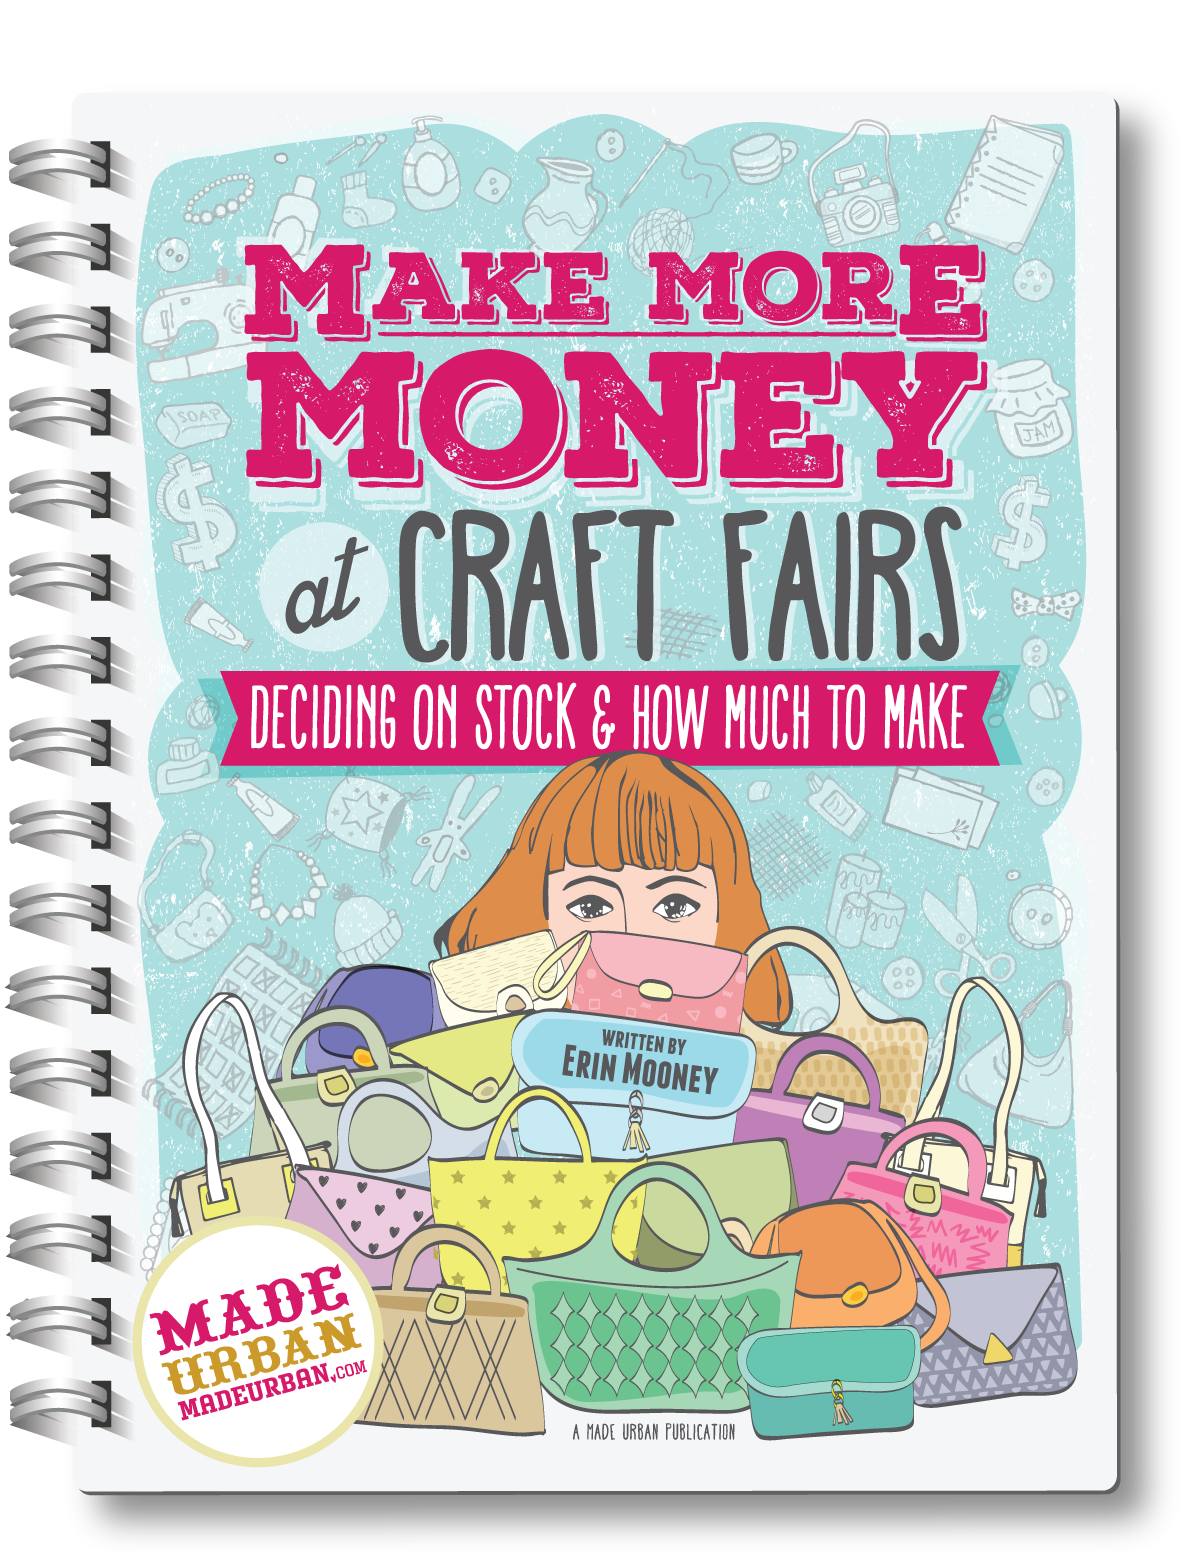 Formulas, calculations and schedules to follow to determine how much stock you should make for a craft fair, if it's a realistic number and how to get stock made in time so you're not up until 2am the night before an event.